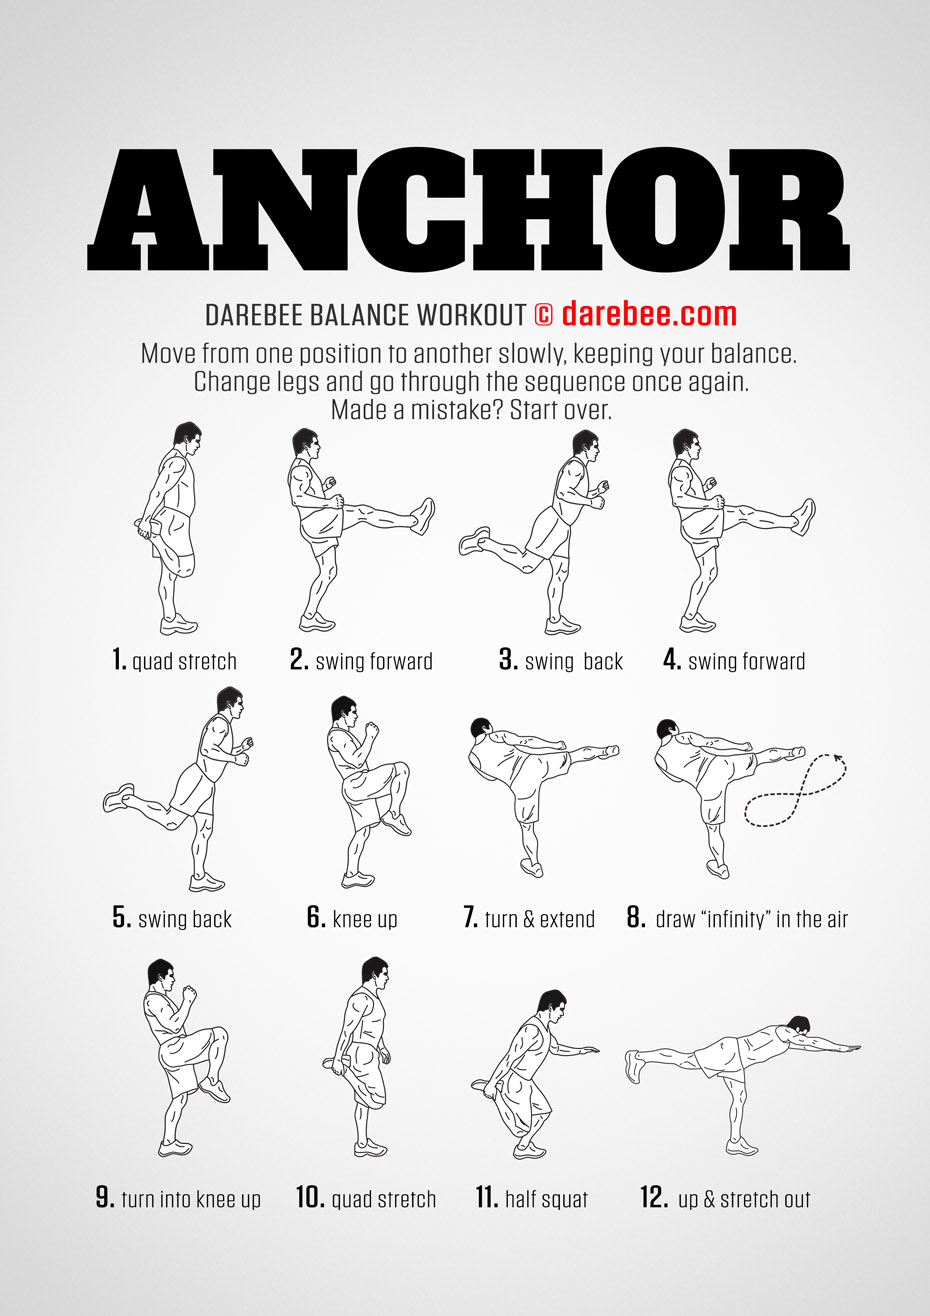 Anchor Workout